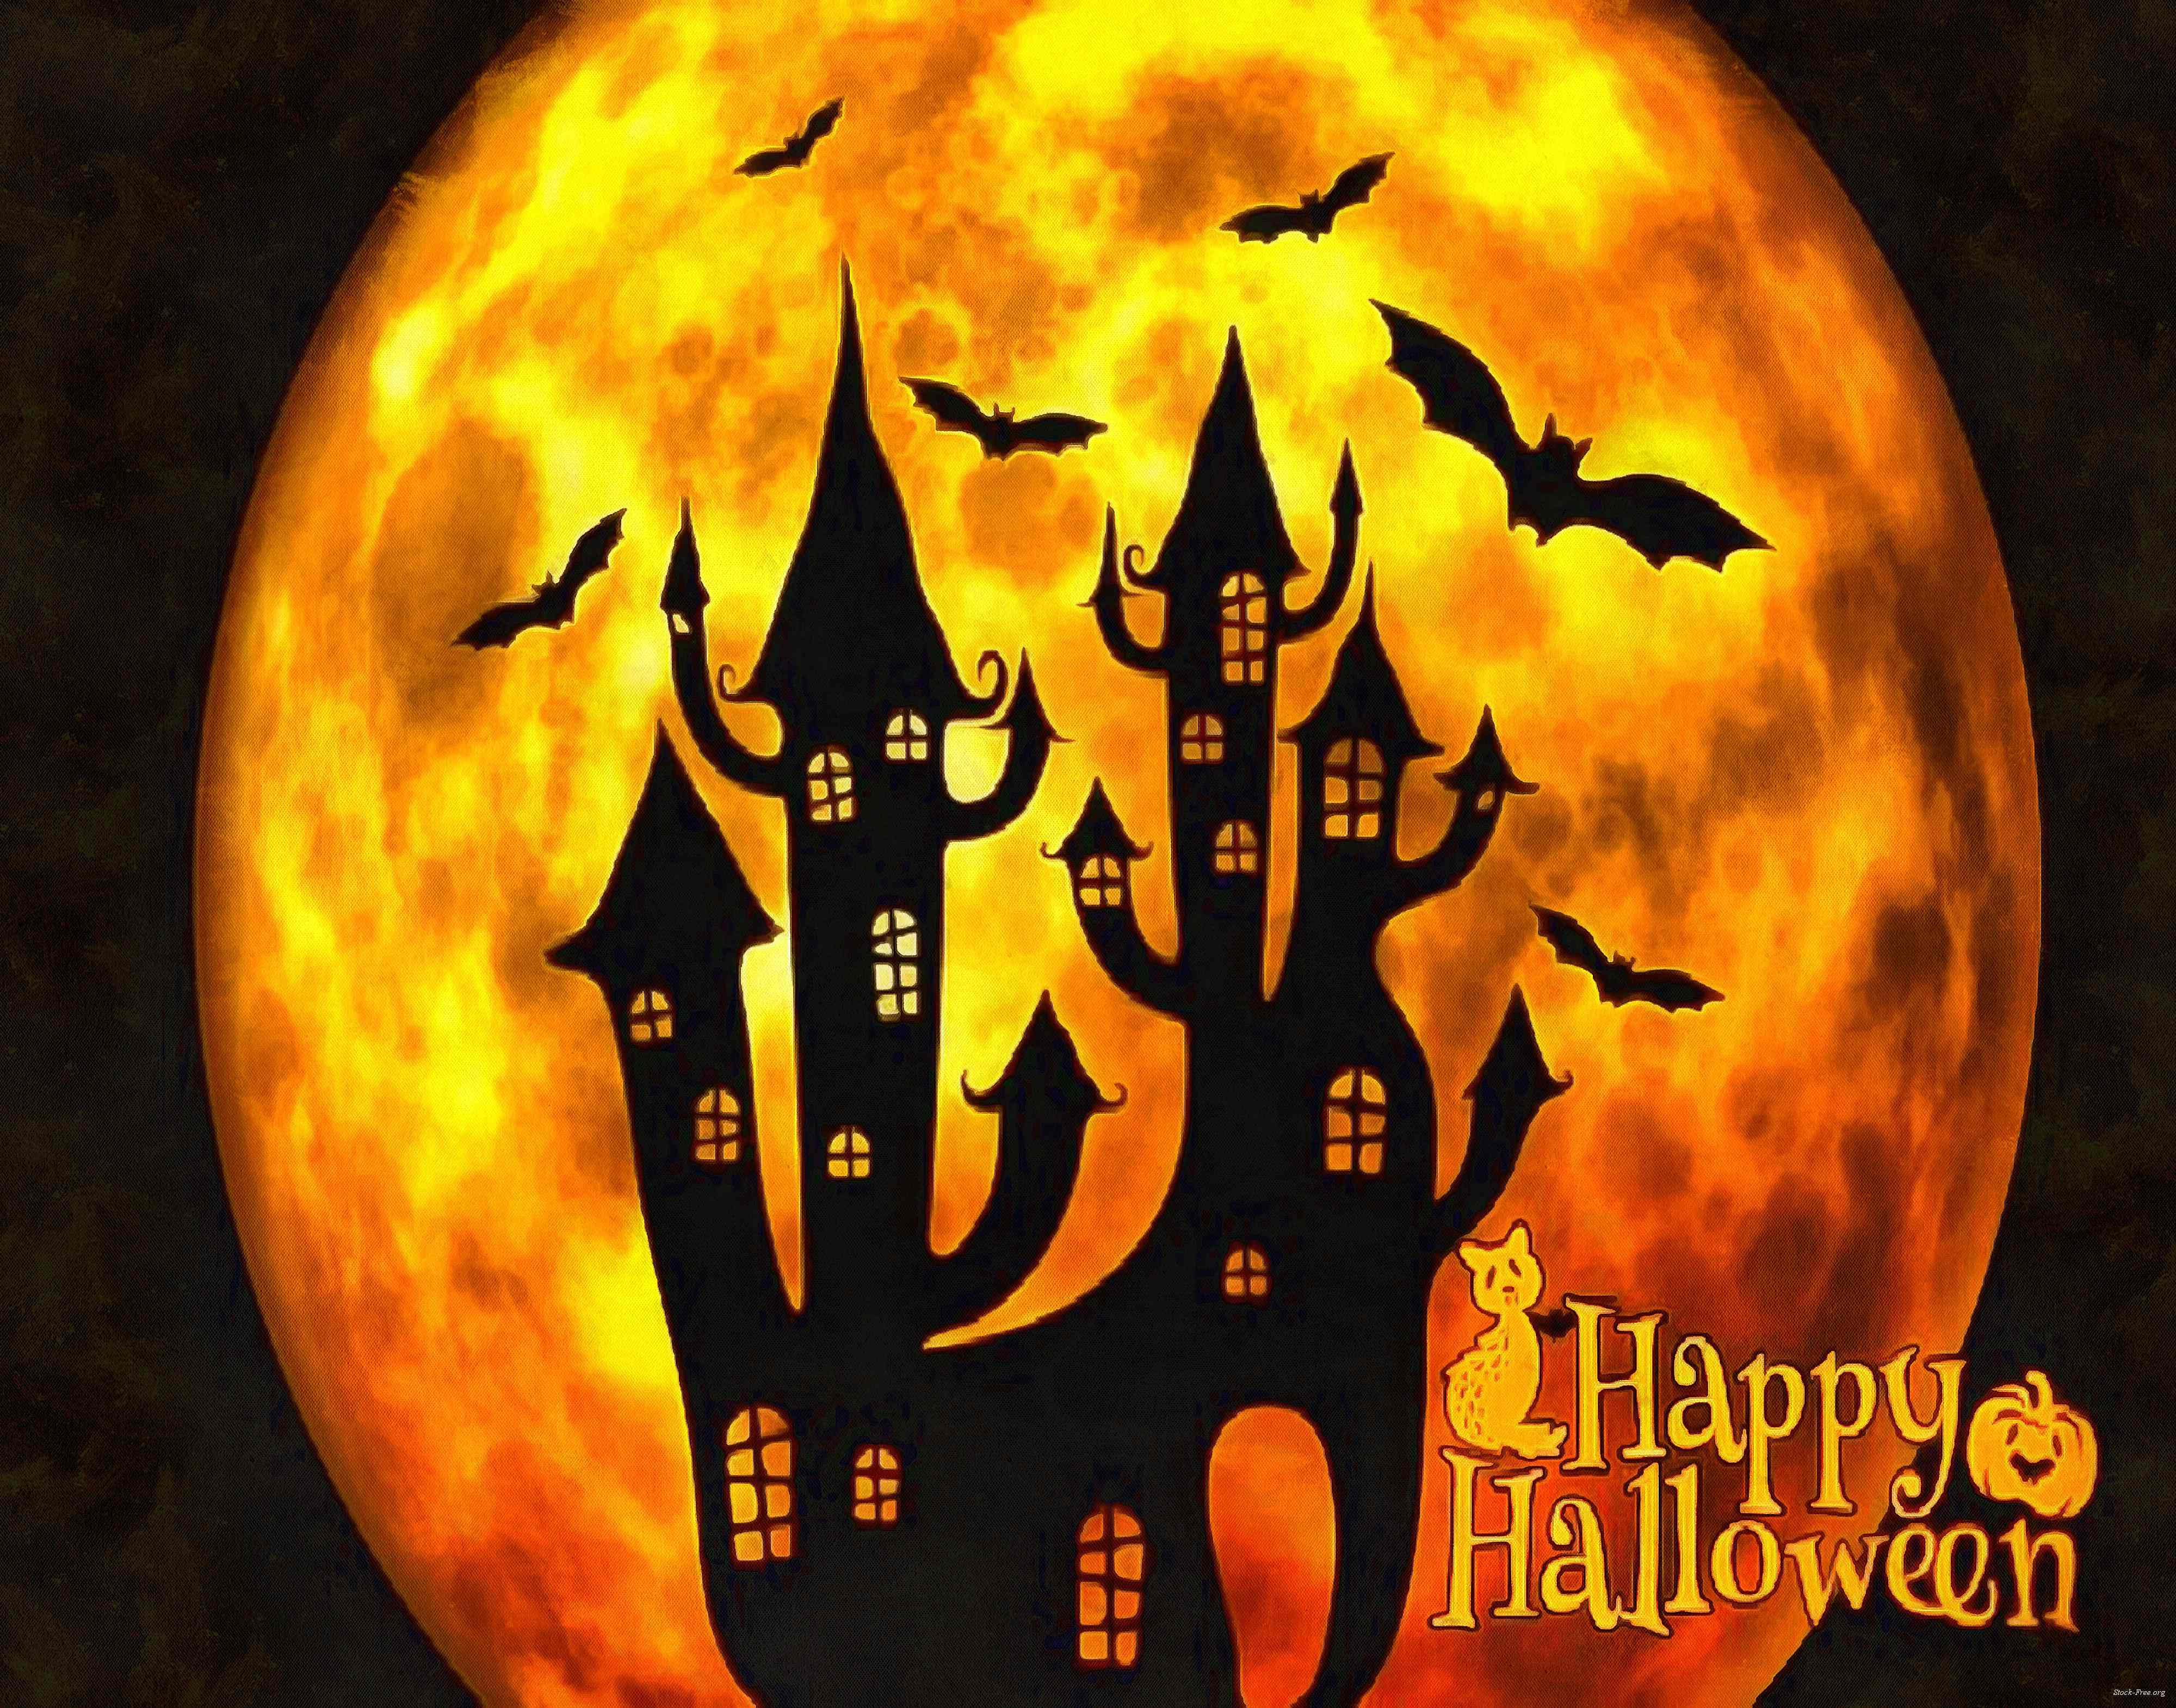 halloween, holiday, moon, happy halloveen, castle, spooky - halloween, free stock photos, public domain images, stock free images, download for free